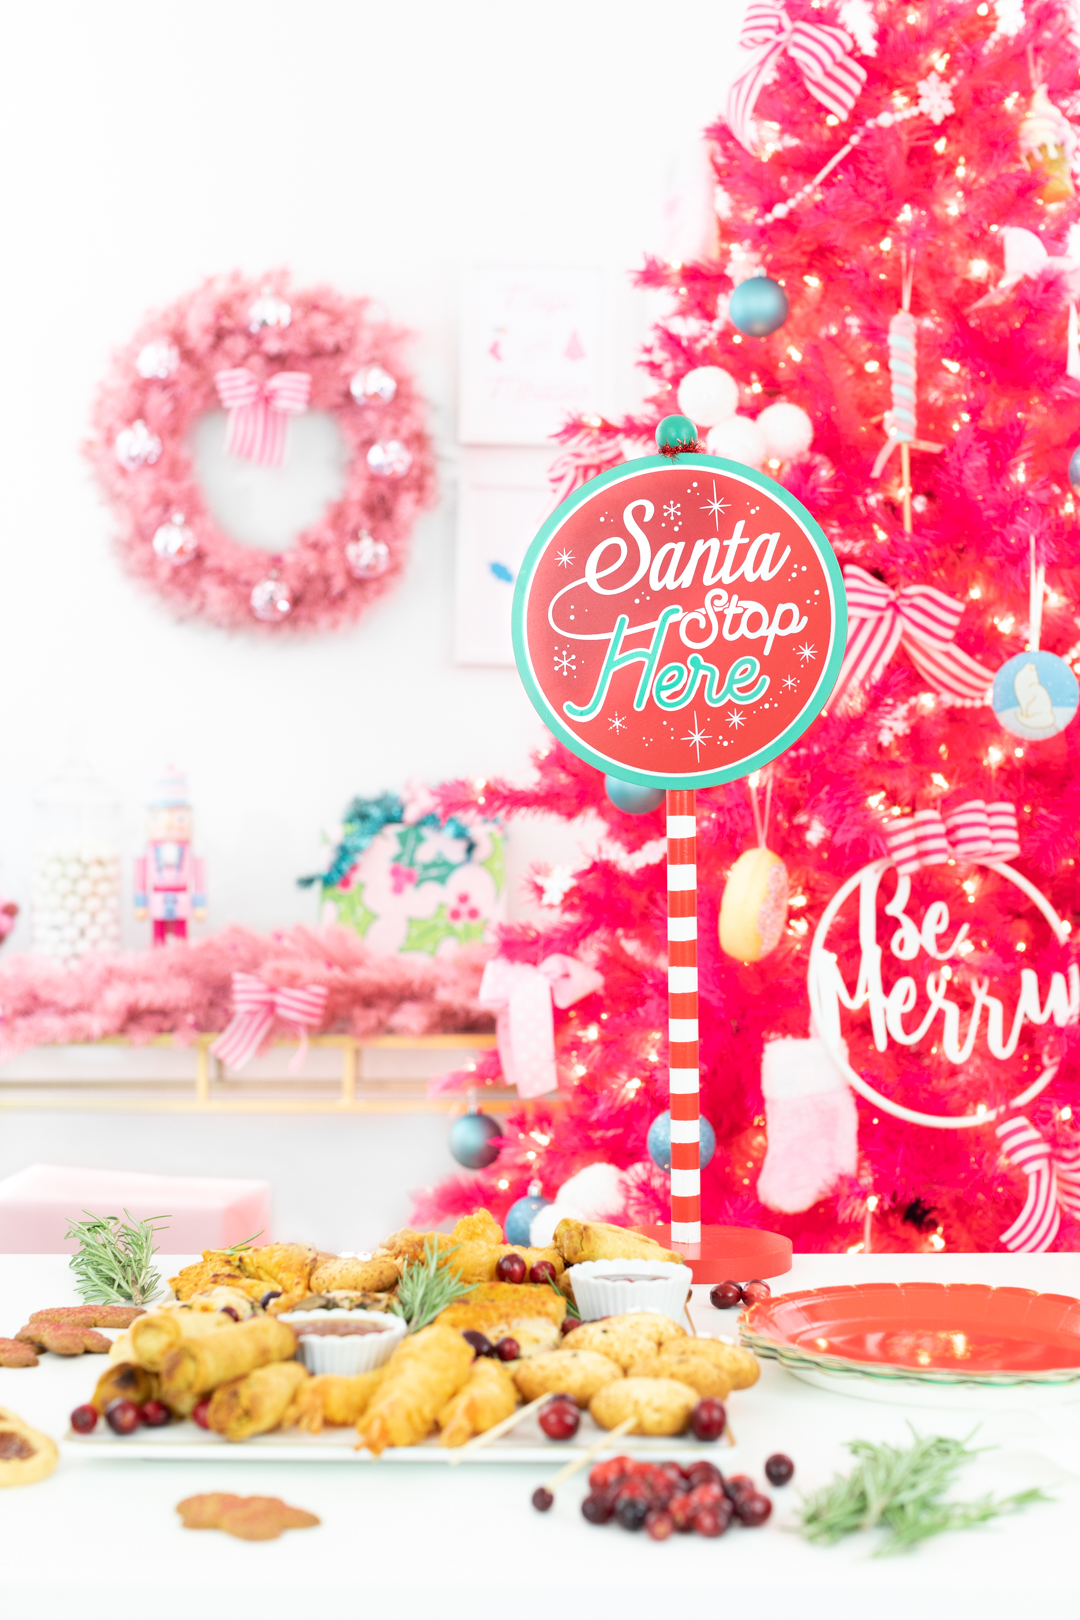 Santa Stop Here Sign from Target with food spread and pink holiday decorations